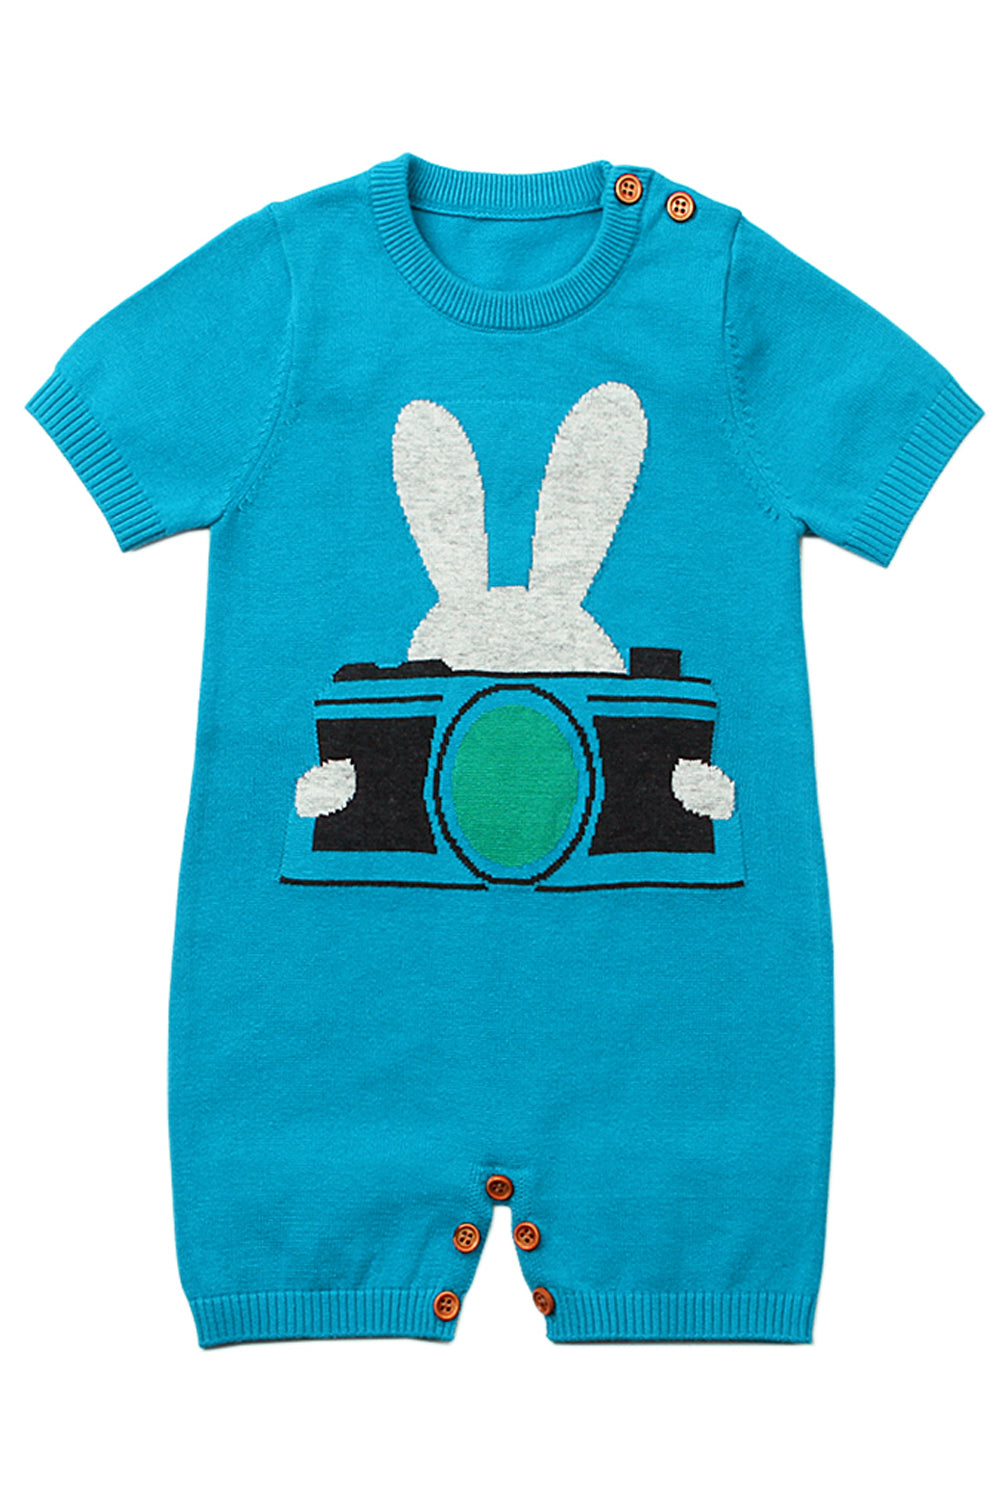 Blue Rabbit Photography Baby T-shirt Onesies